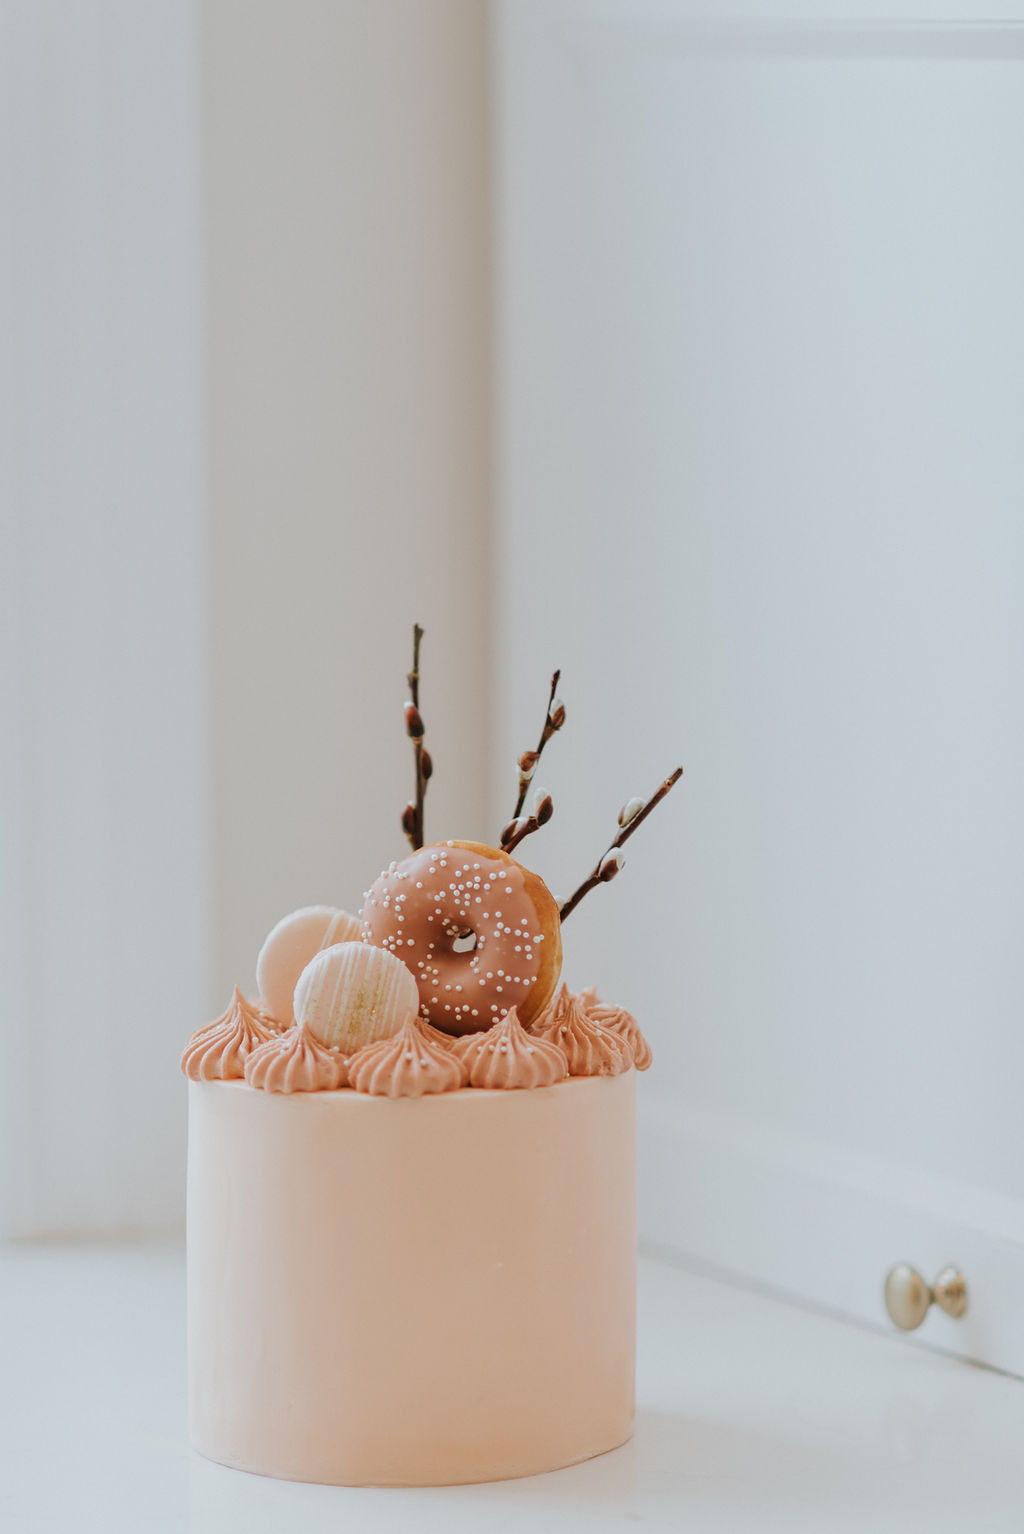 montreal bridal shower cake with donuts and macarons